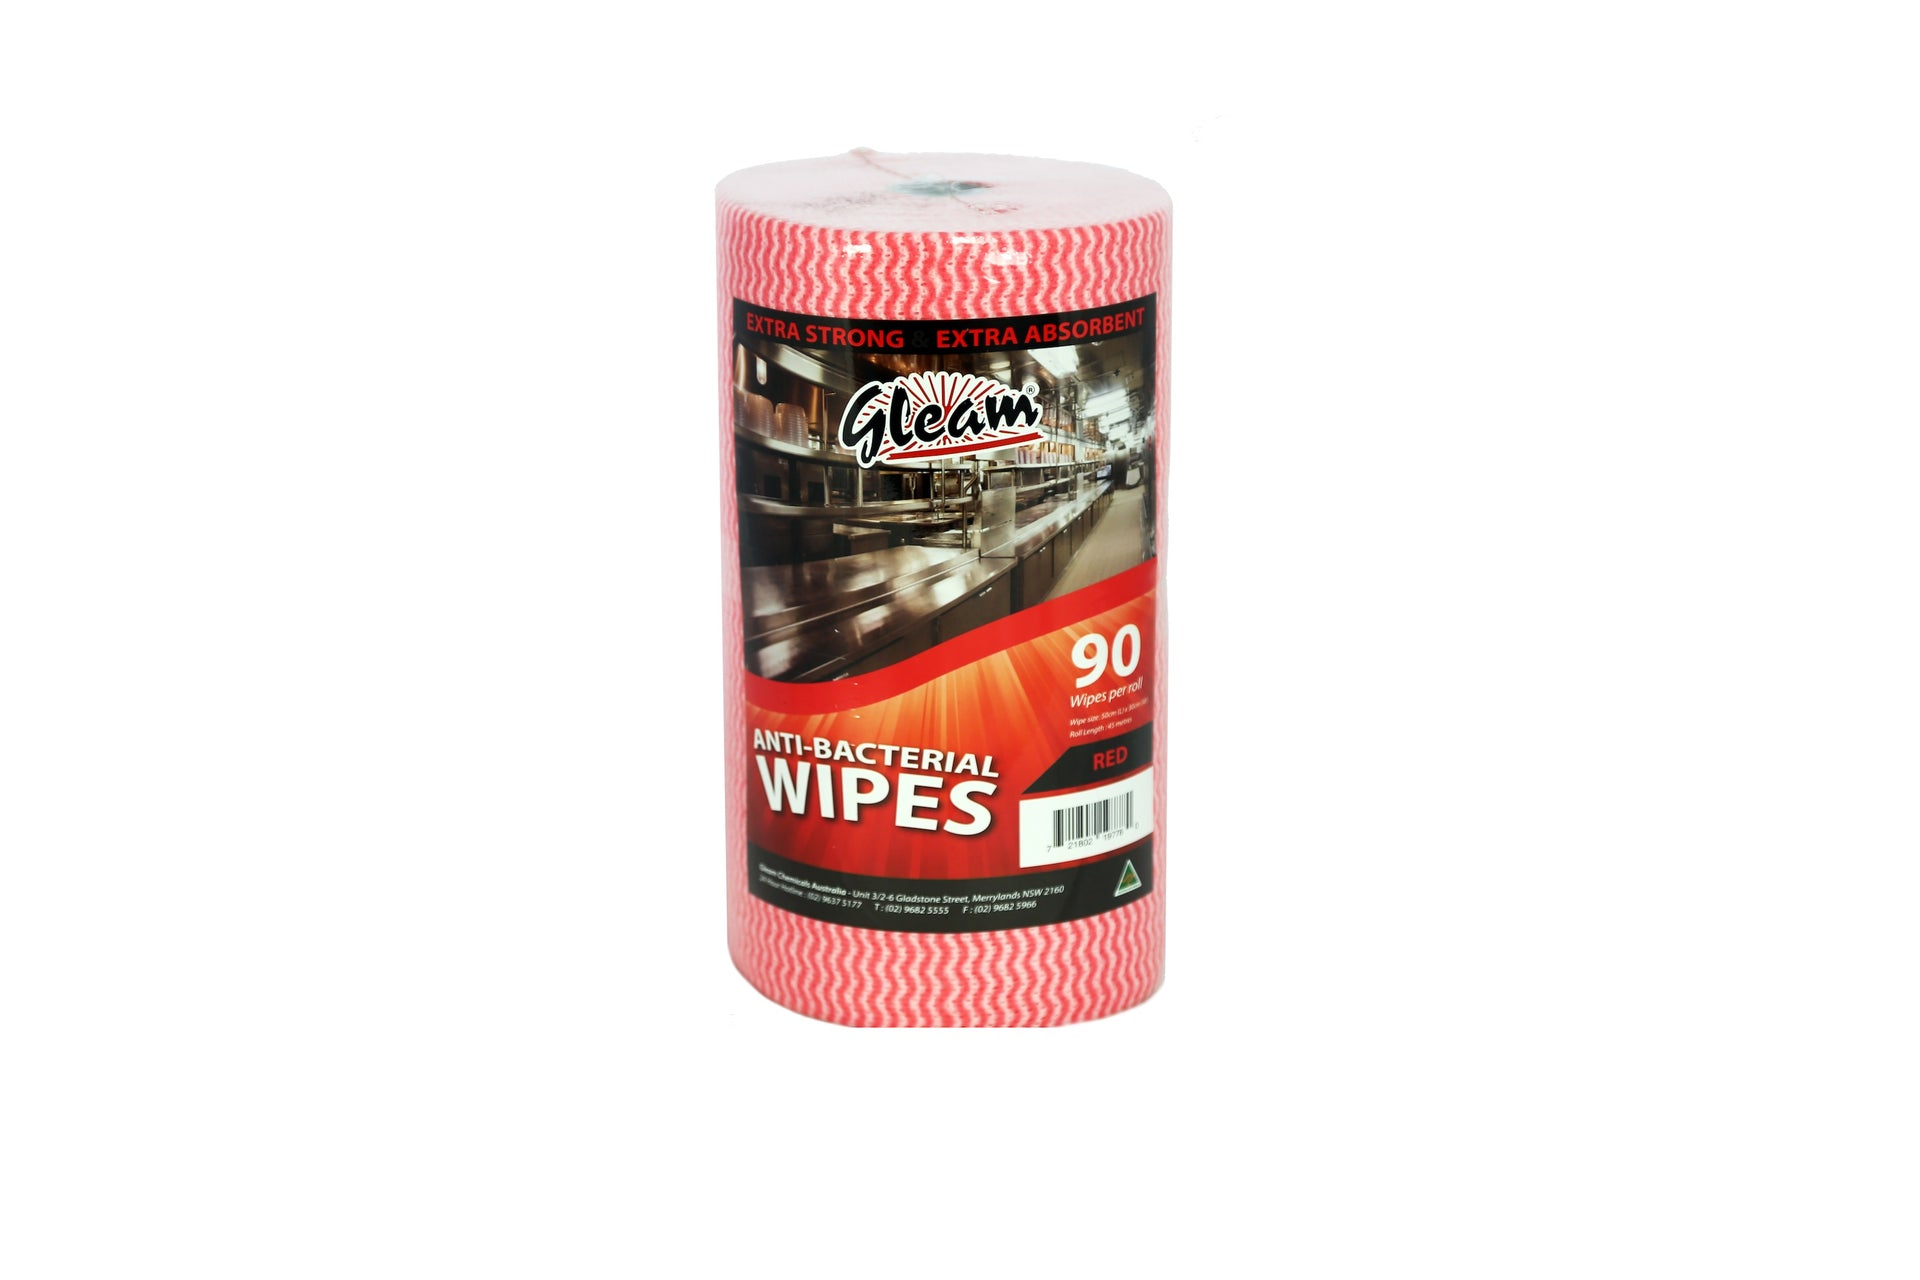 ANTIBACTERIAL FOOD SERVICE WIPES 1 ROLL